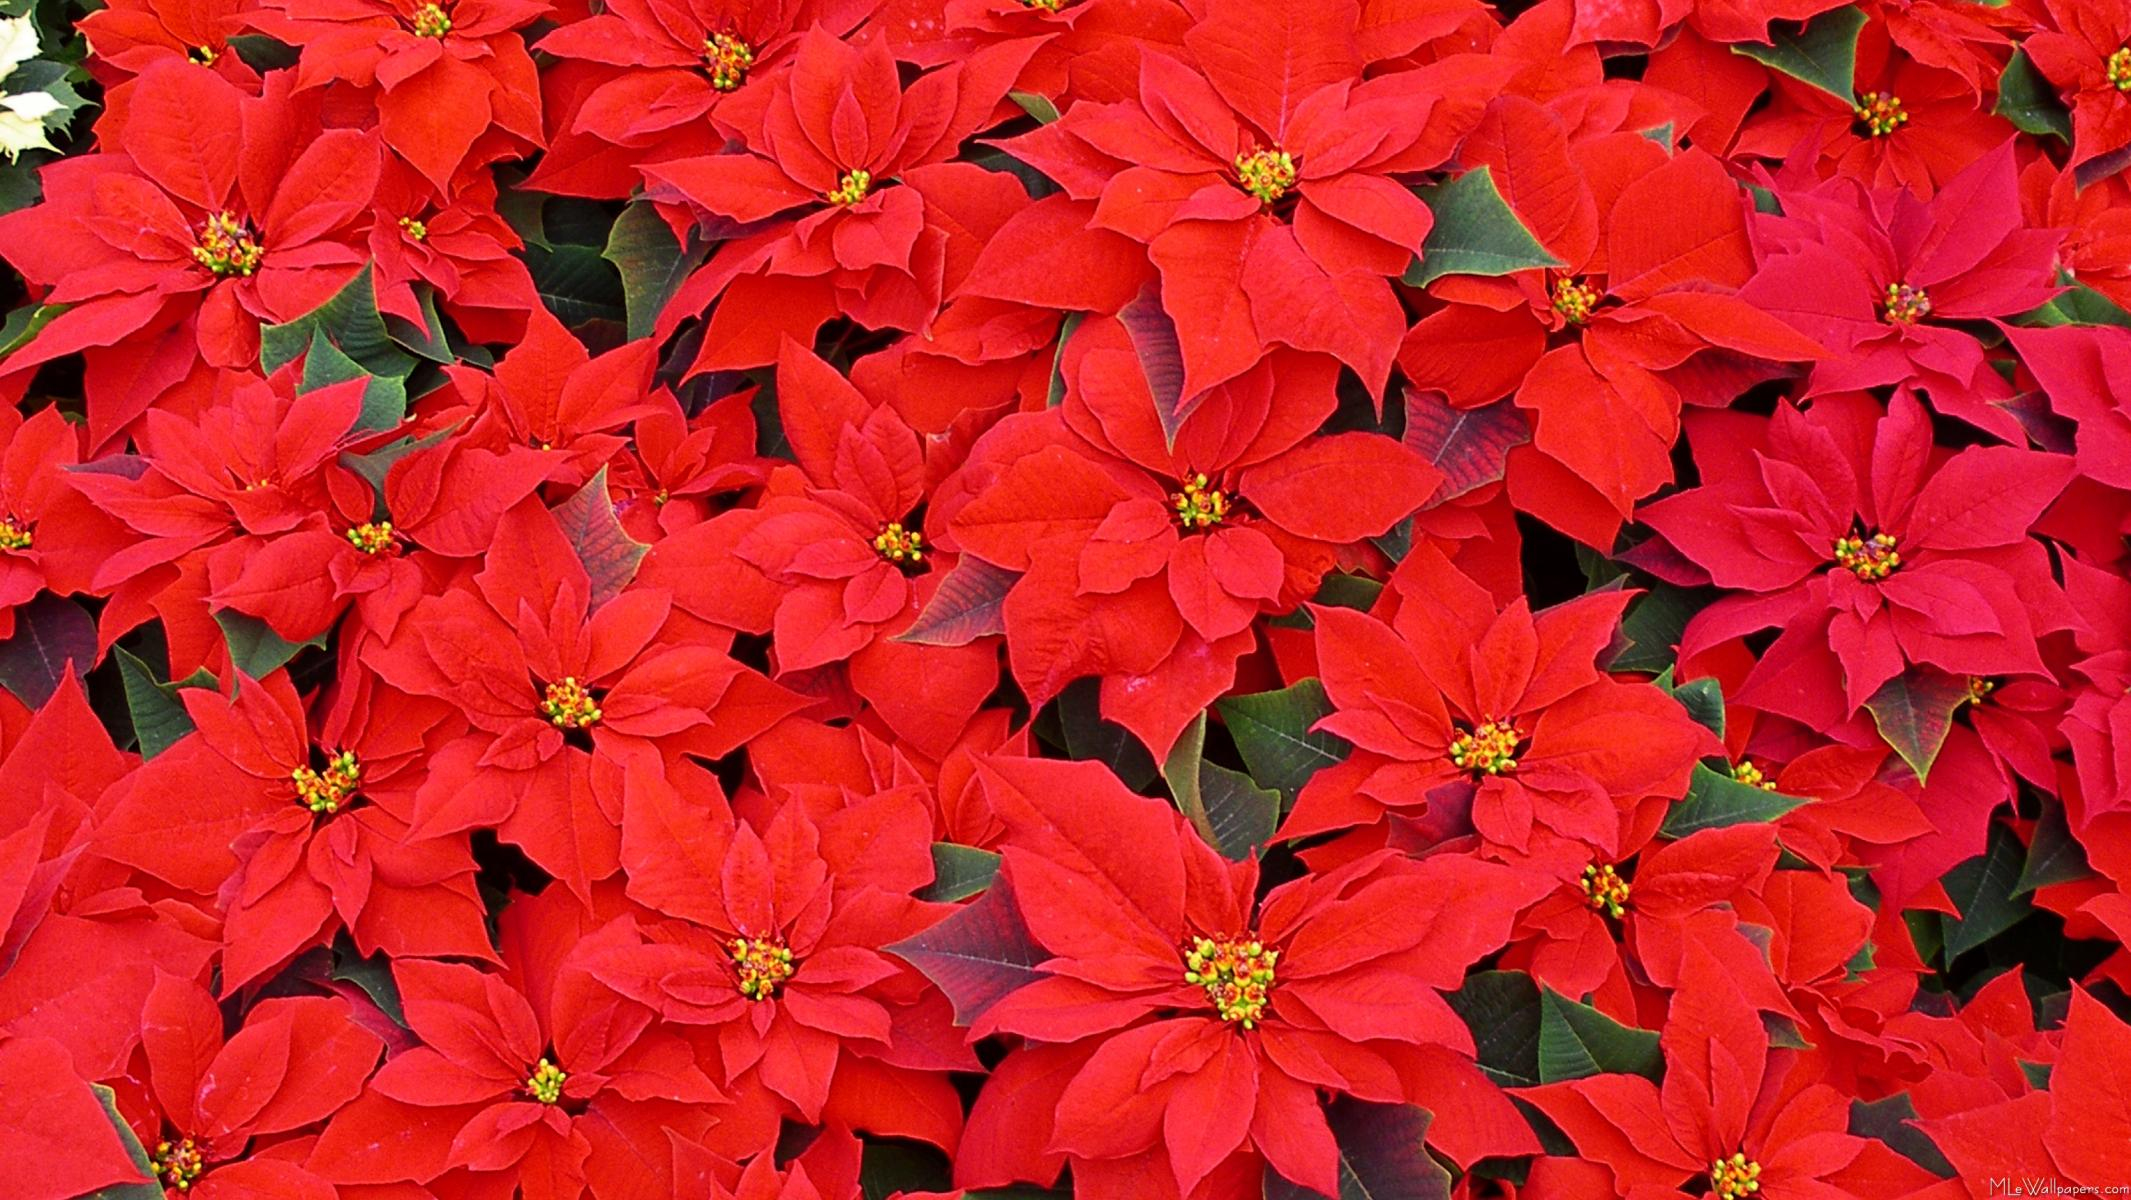 http://www.mlewallpapers.com/image/16x9-Widescreen-1/view/Red-Poinsettias-2.jpg